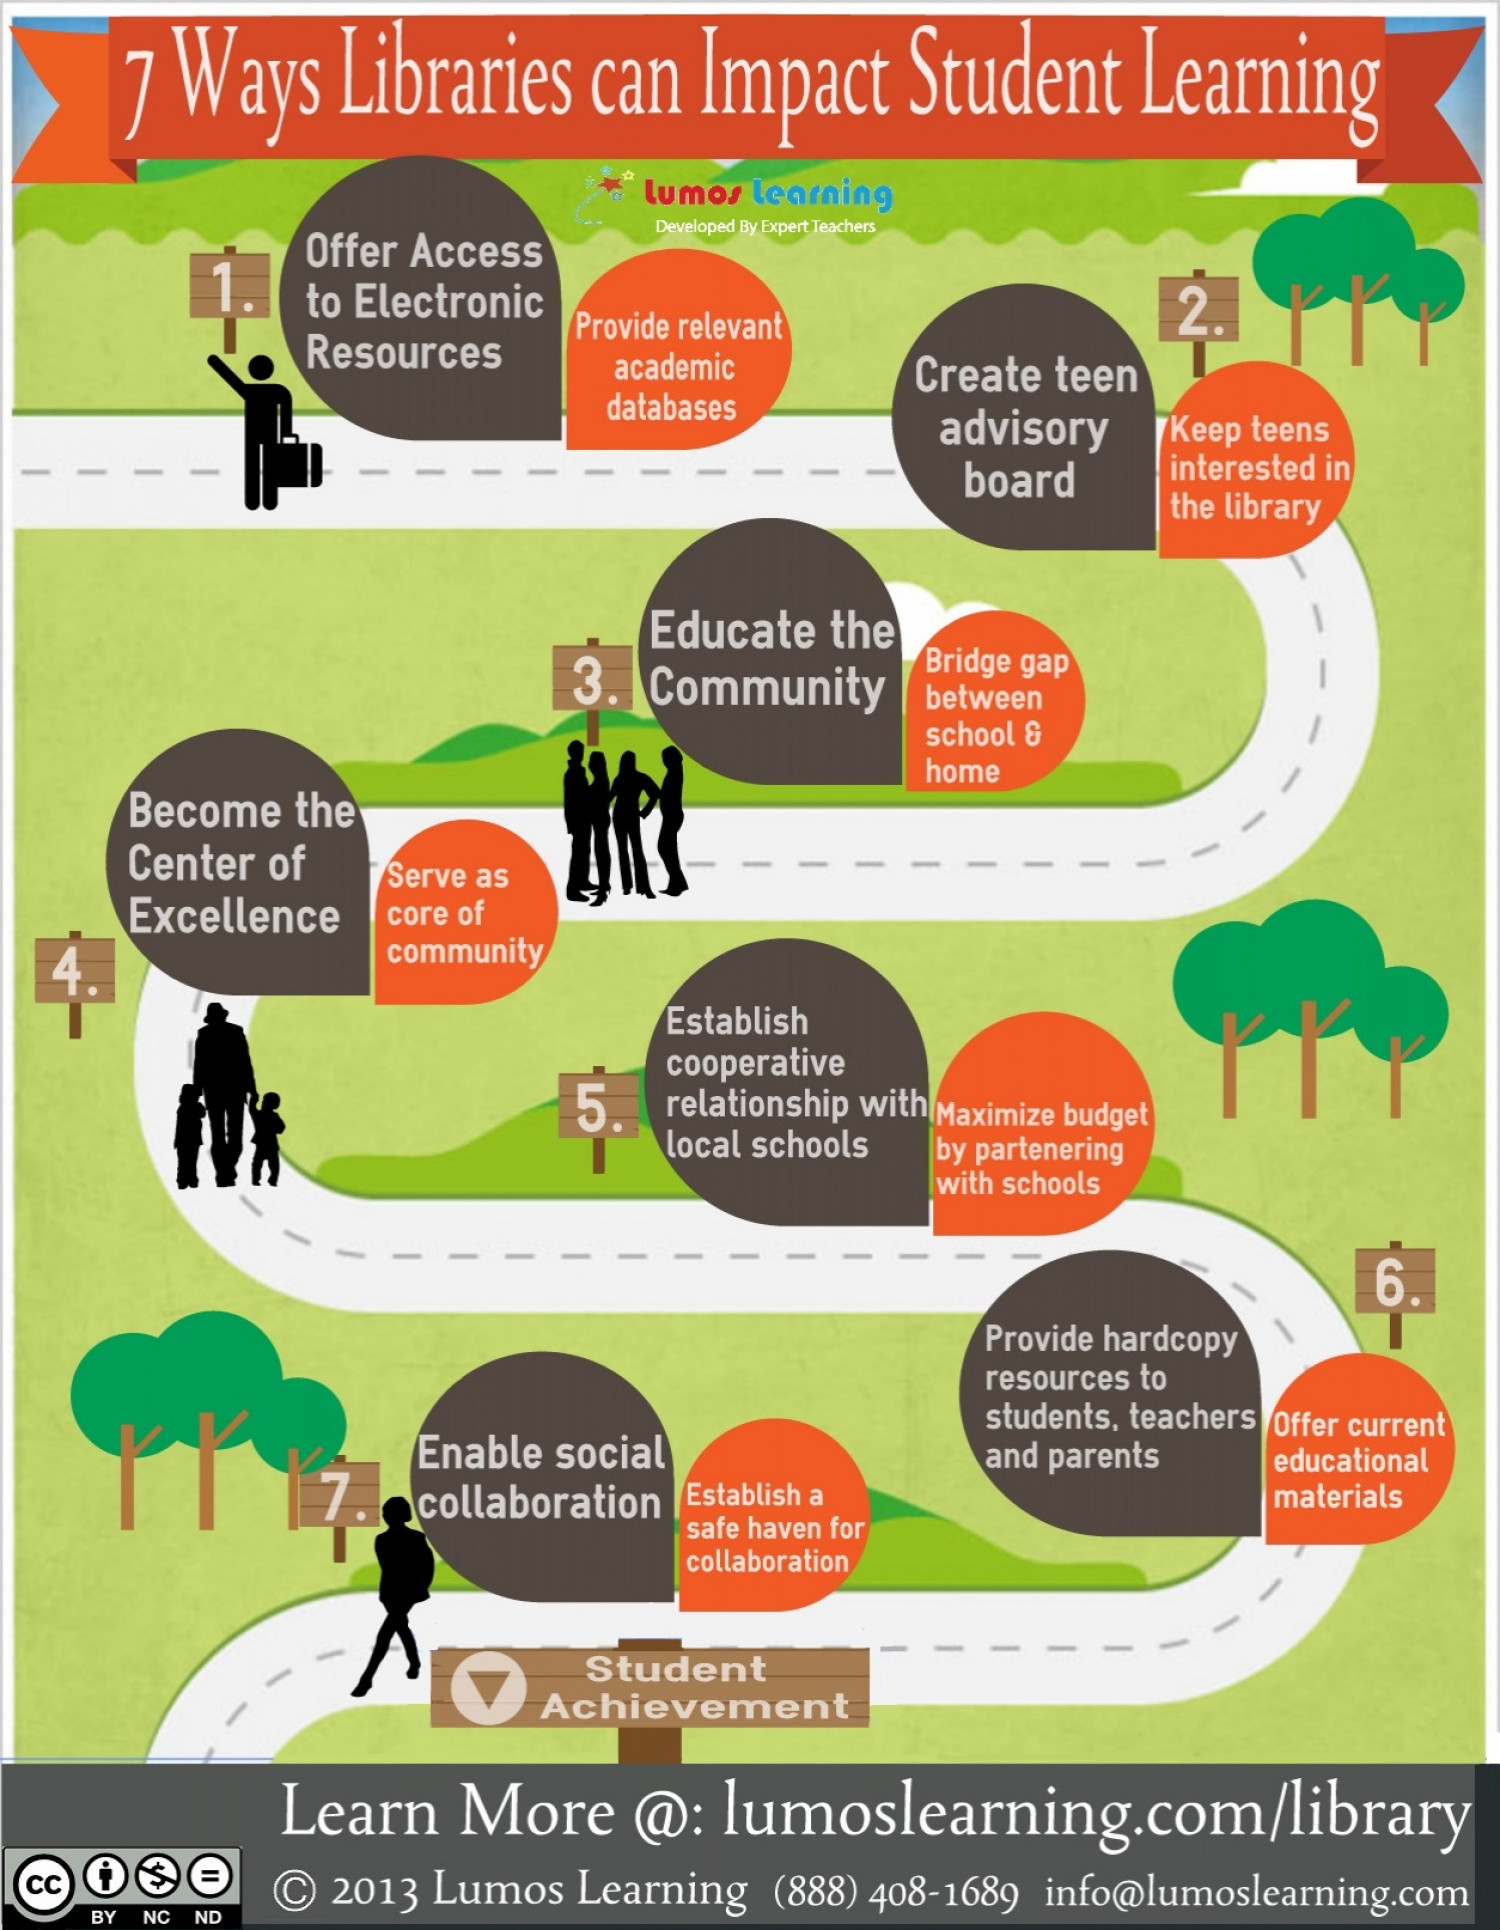 7 Ways Libraries can Impact Student Learning Infographic